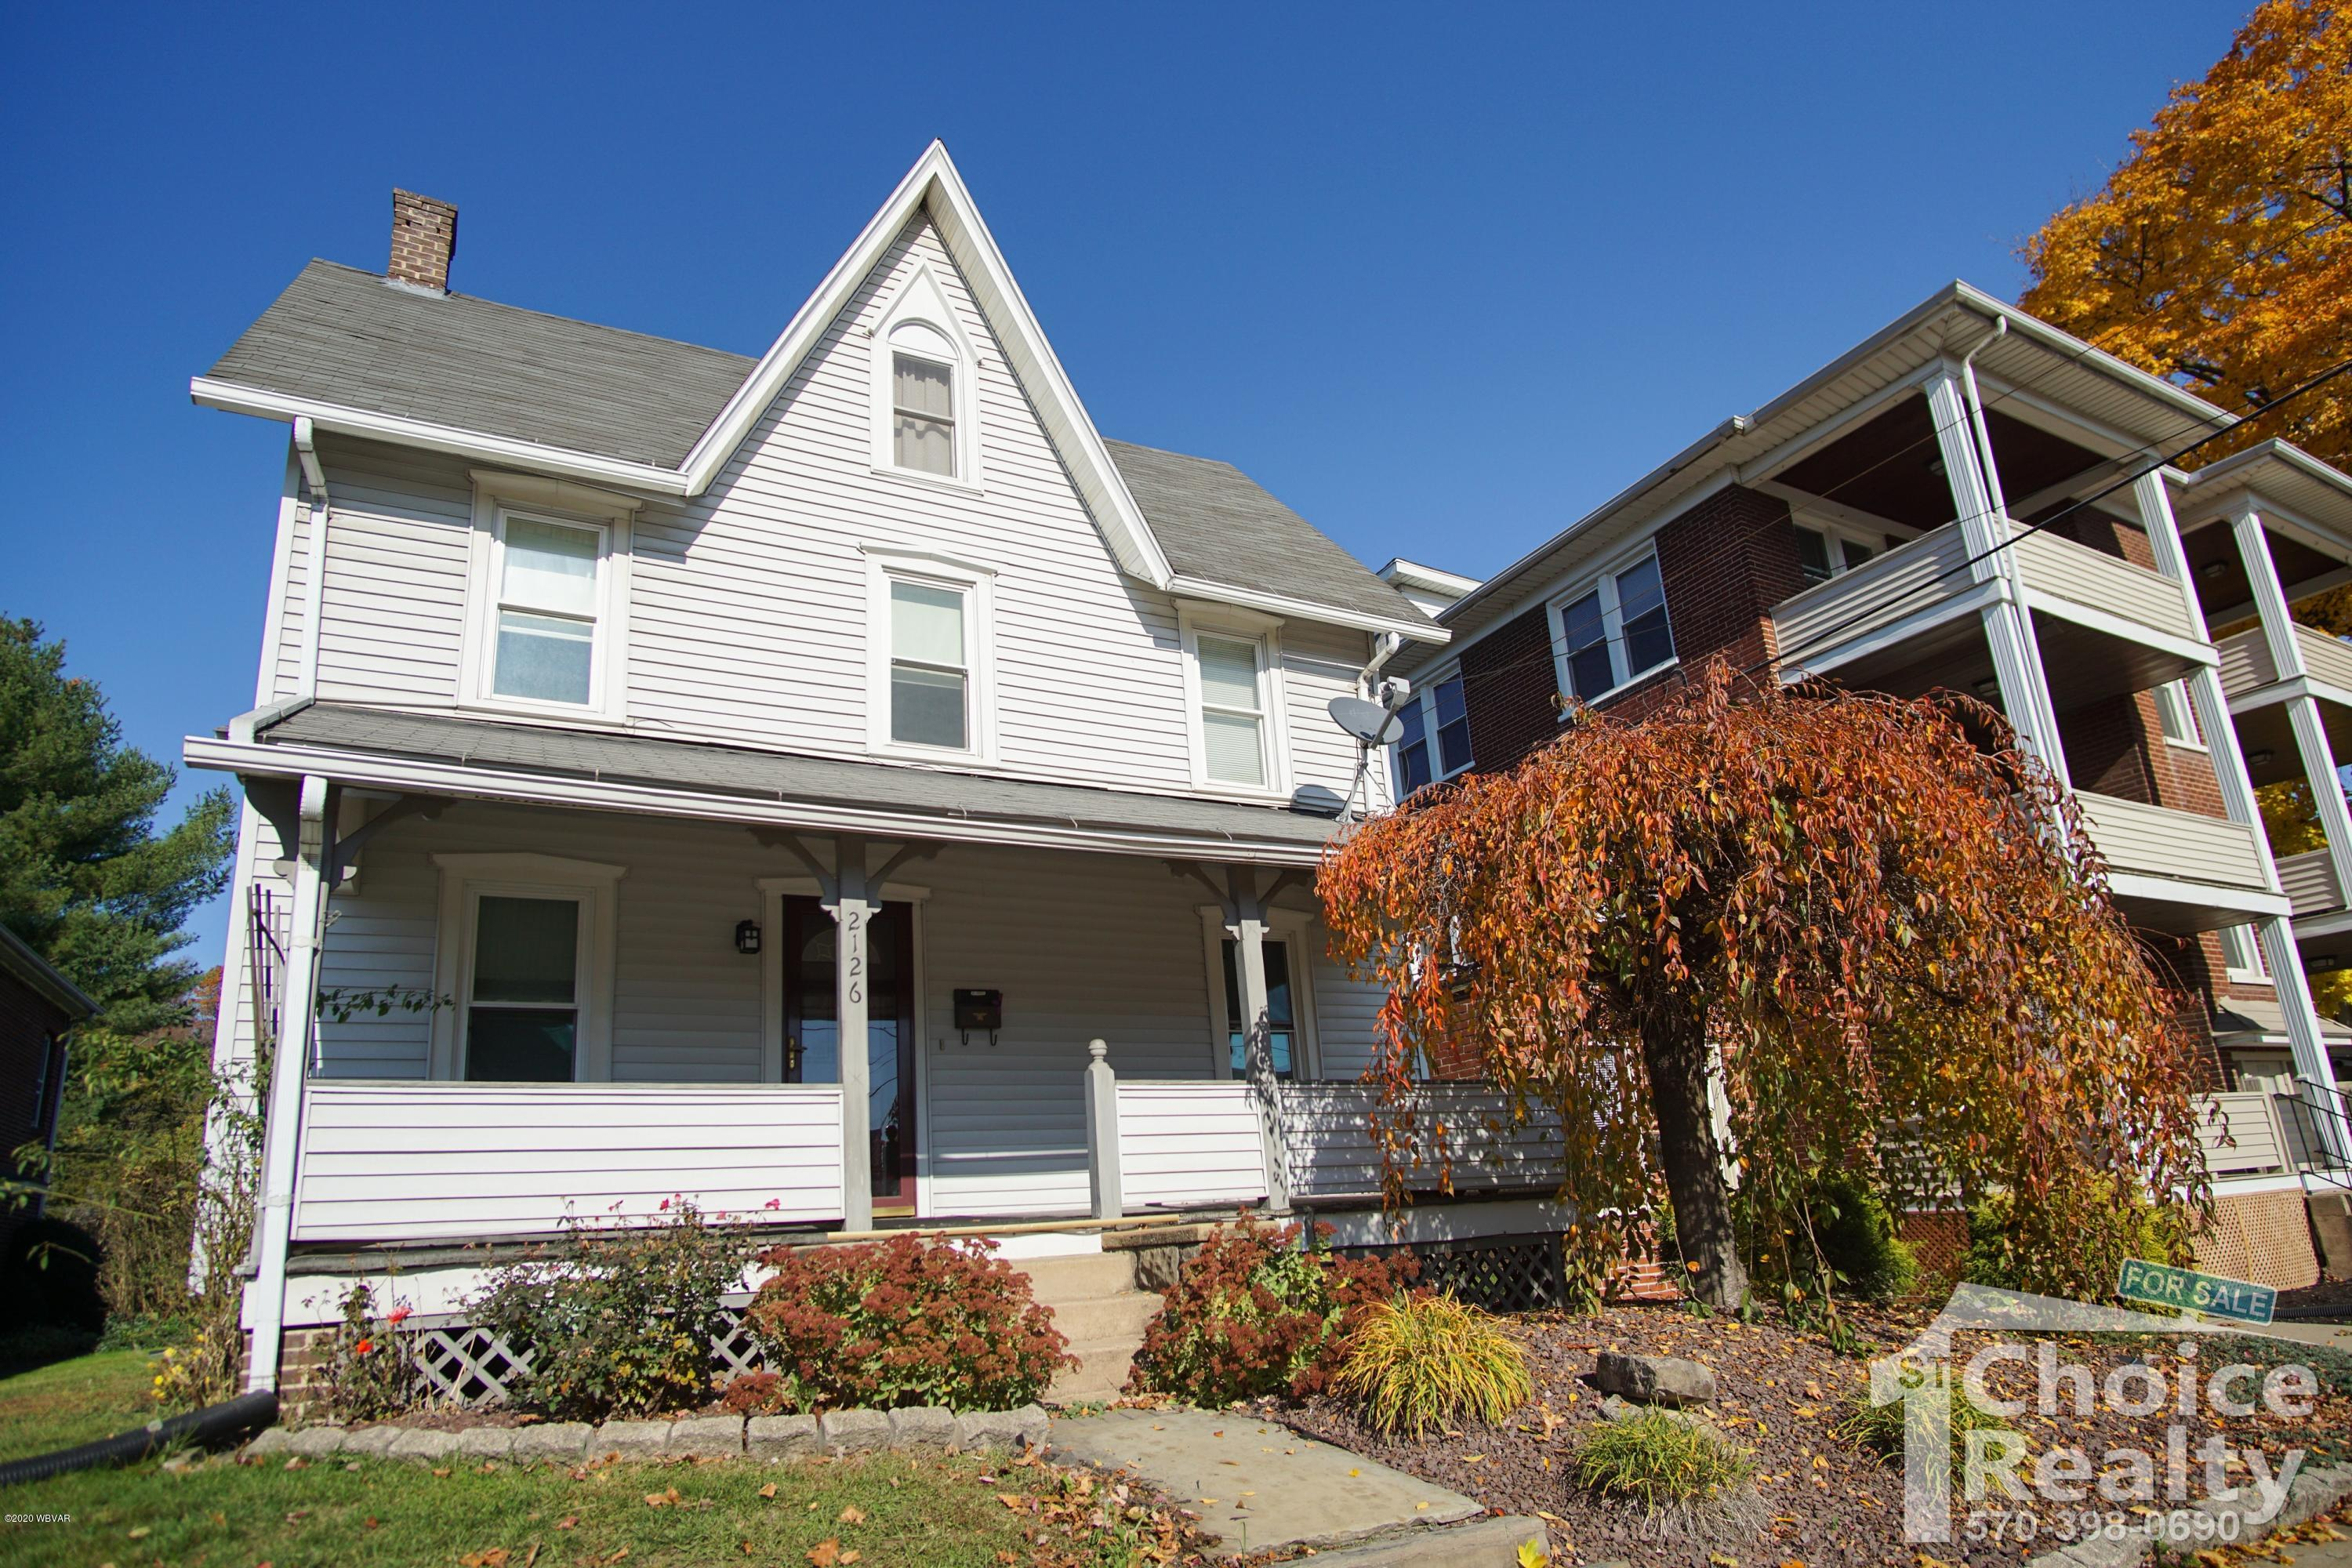 2126 4TH STREET, Williamsport, PA 17701, 3 Bedrooms Bedrooms, ,3 BathroomsBathrooms,Residential,For sale,4TH,WB-91508